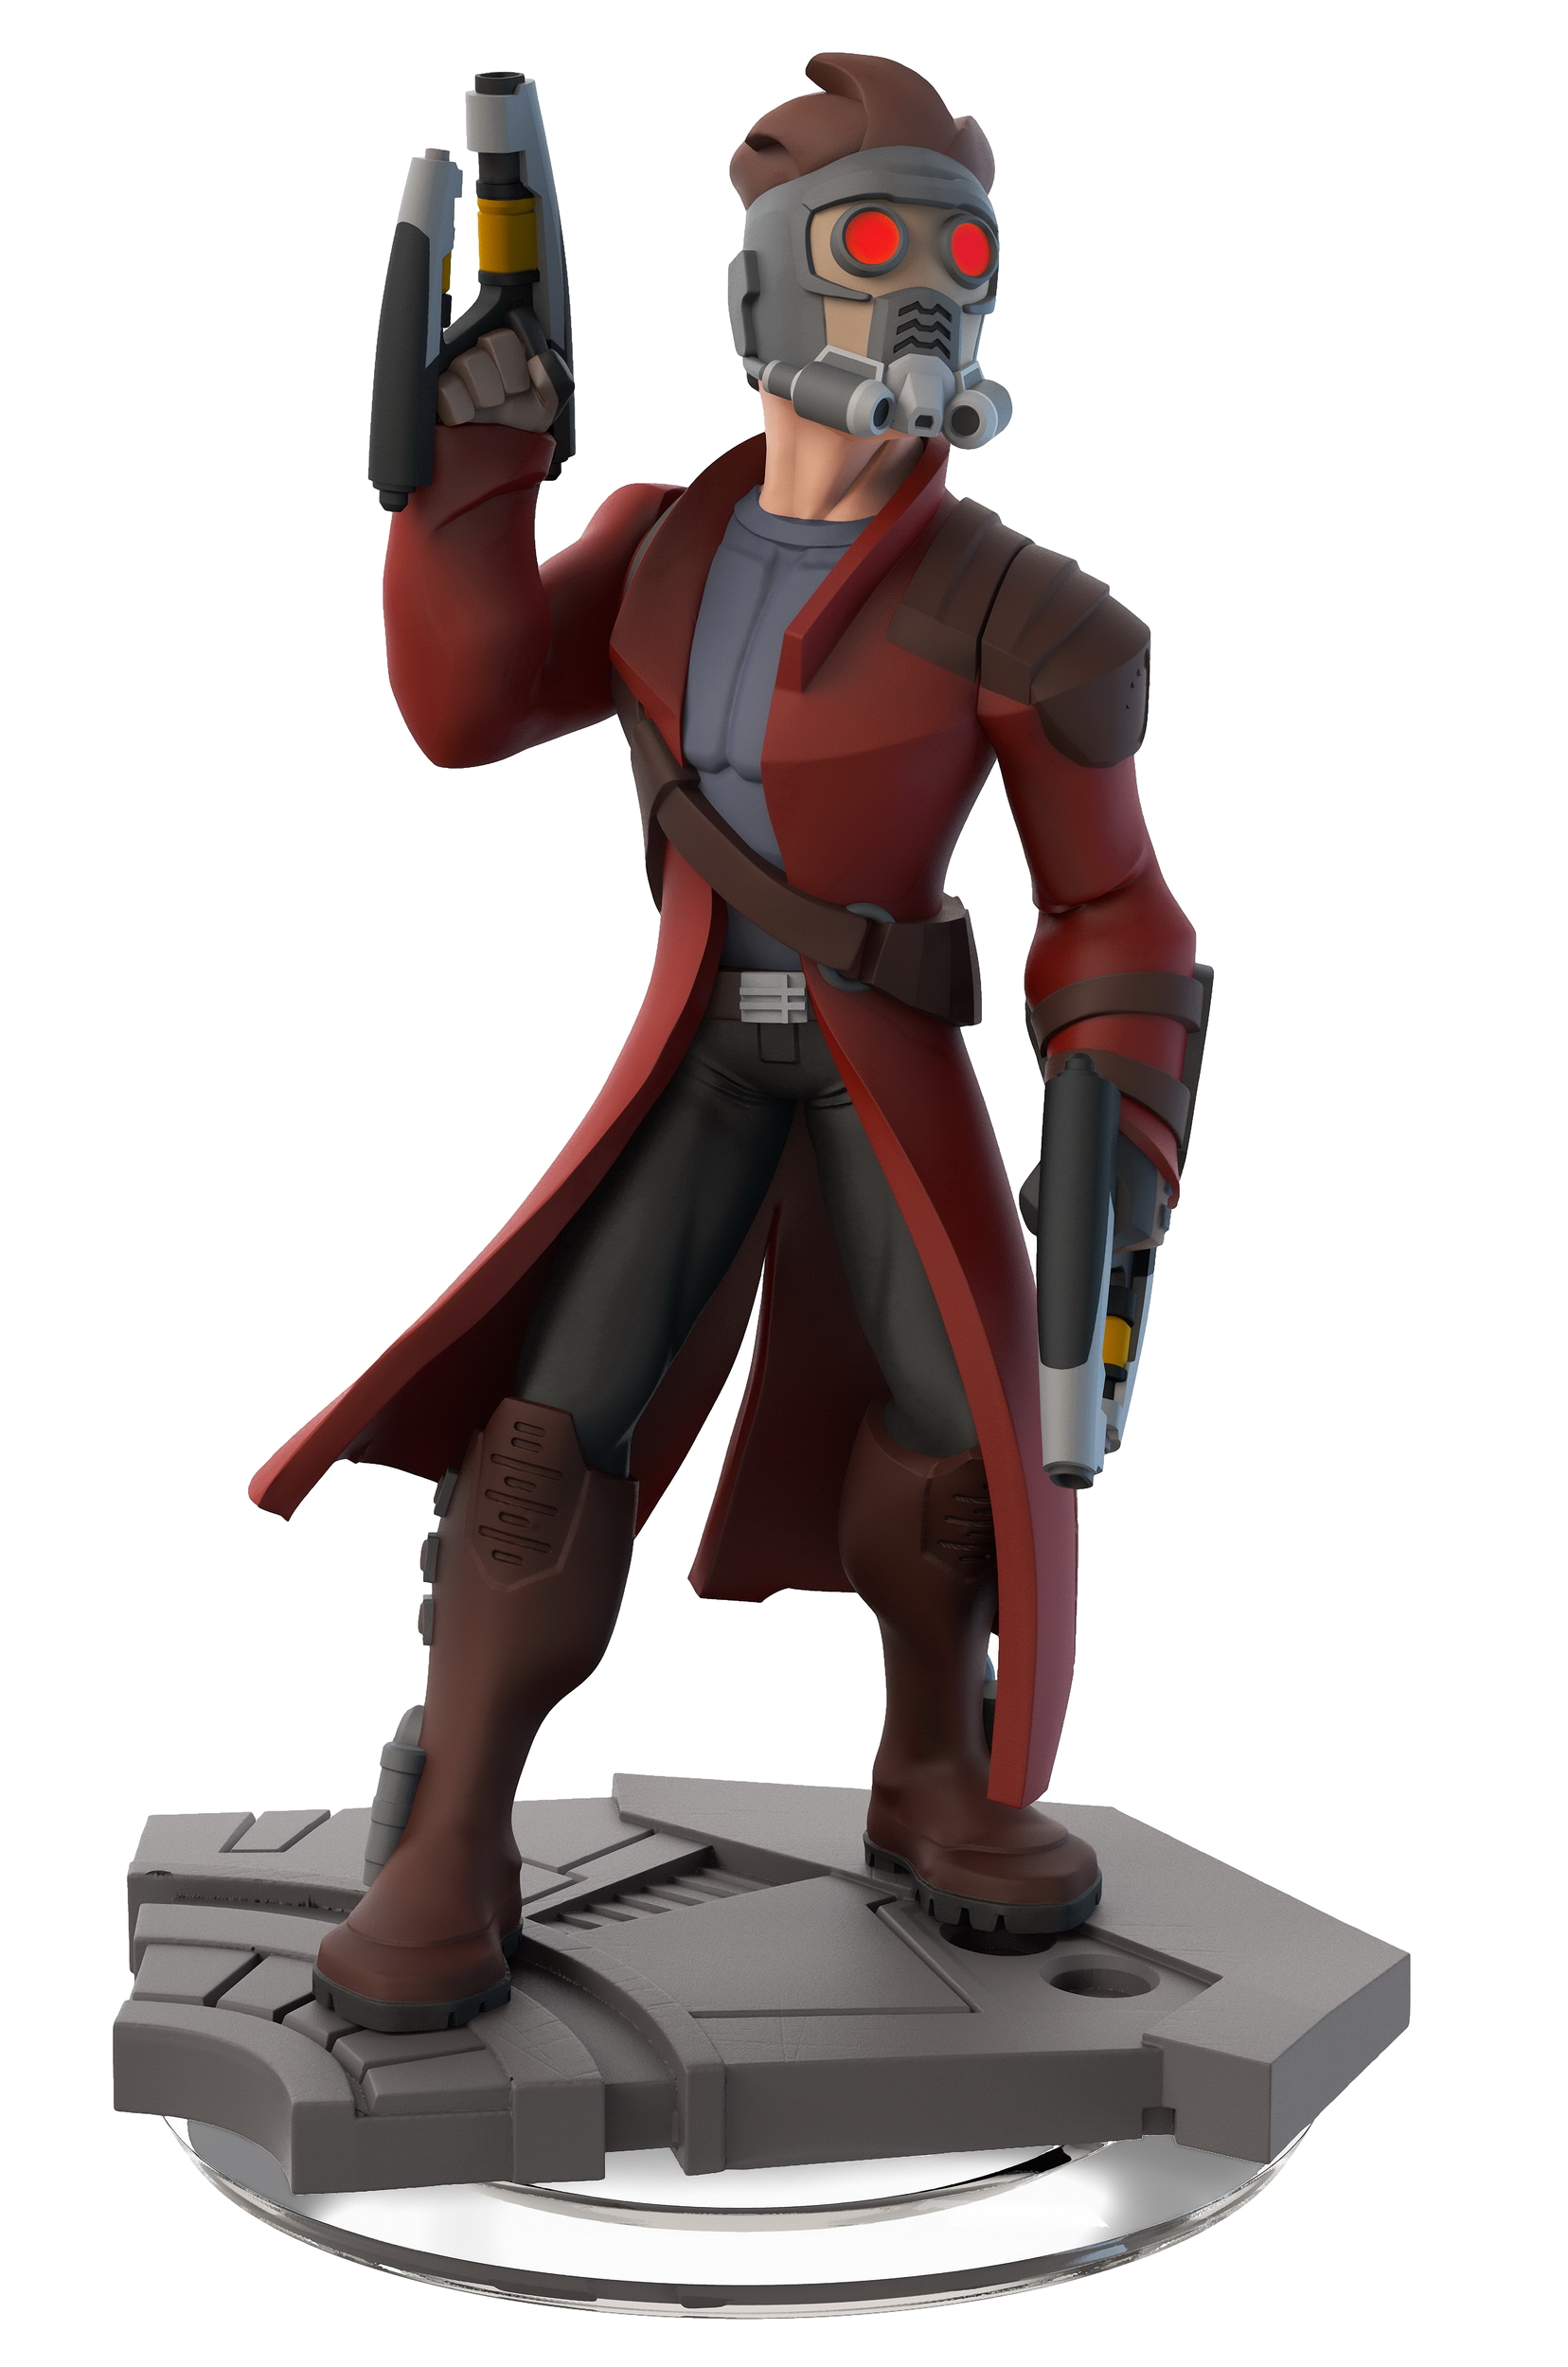 Wreck it ralph disney infinity wiki fandom powered by - Star Lord Di2 0 Figurine Transparent Png